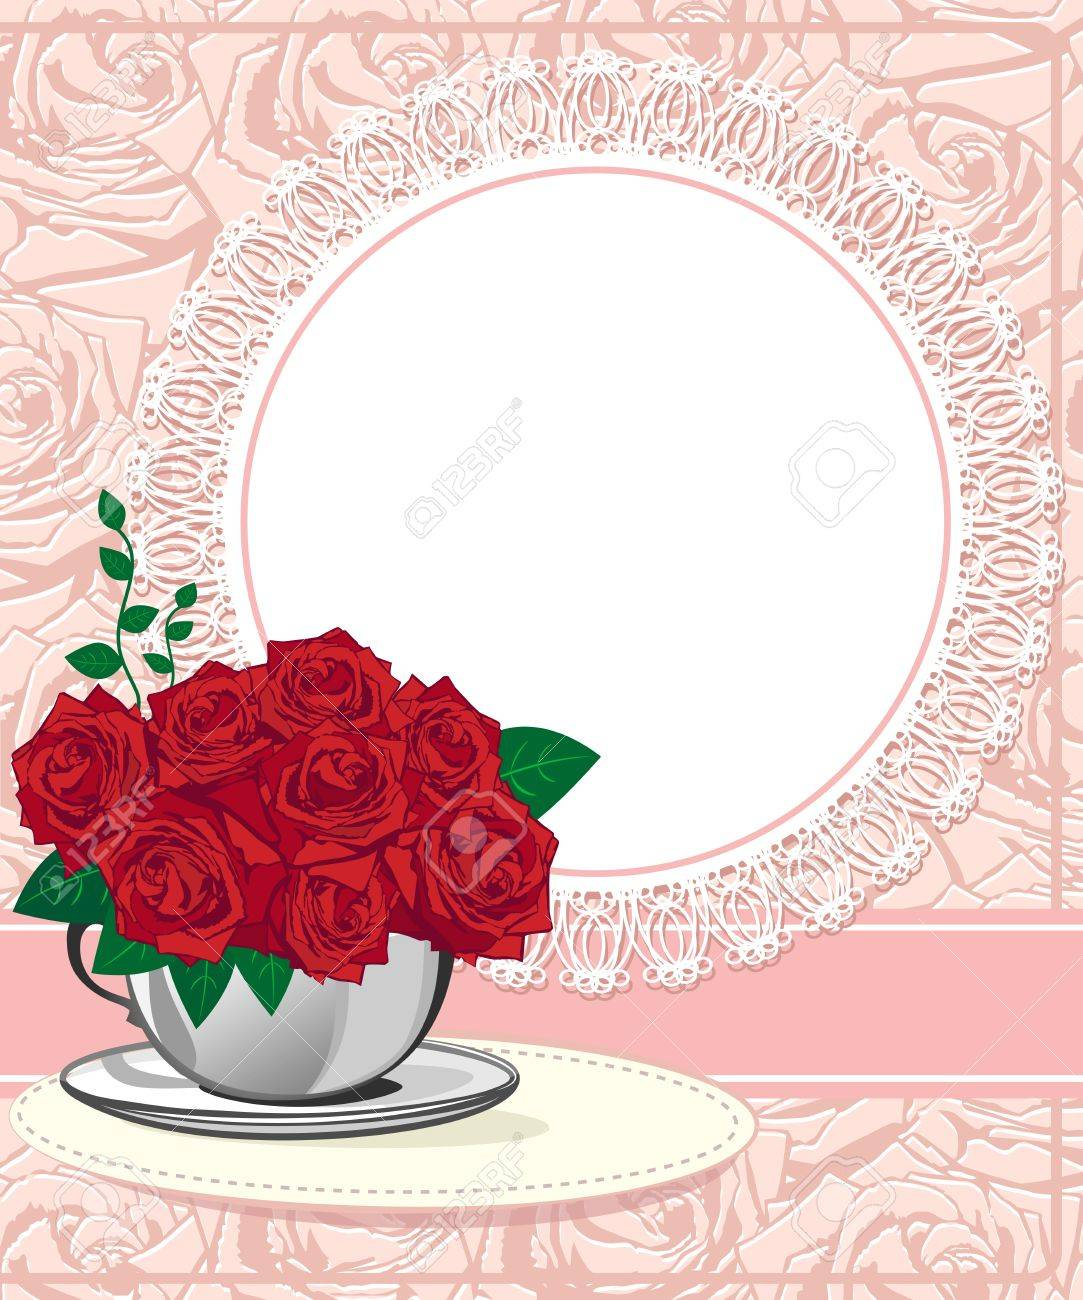 Red Rose In A White Cup. Wedding Invitations Or Announcements ...